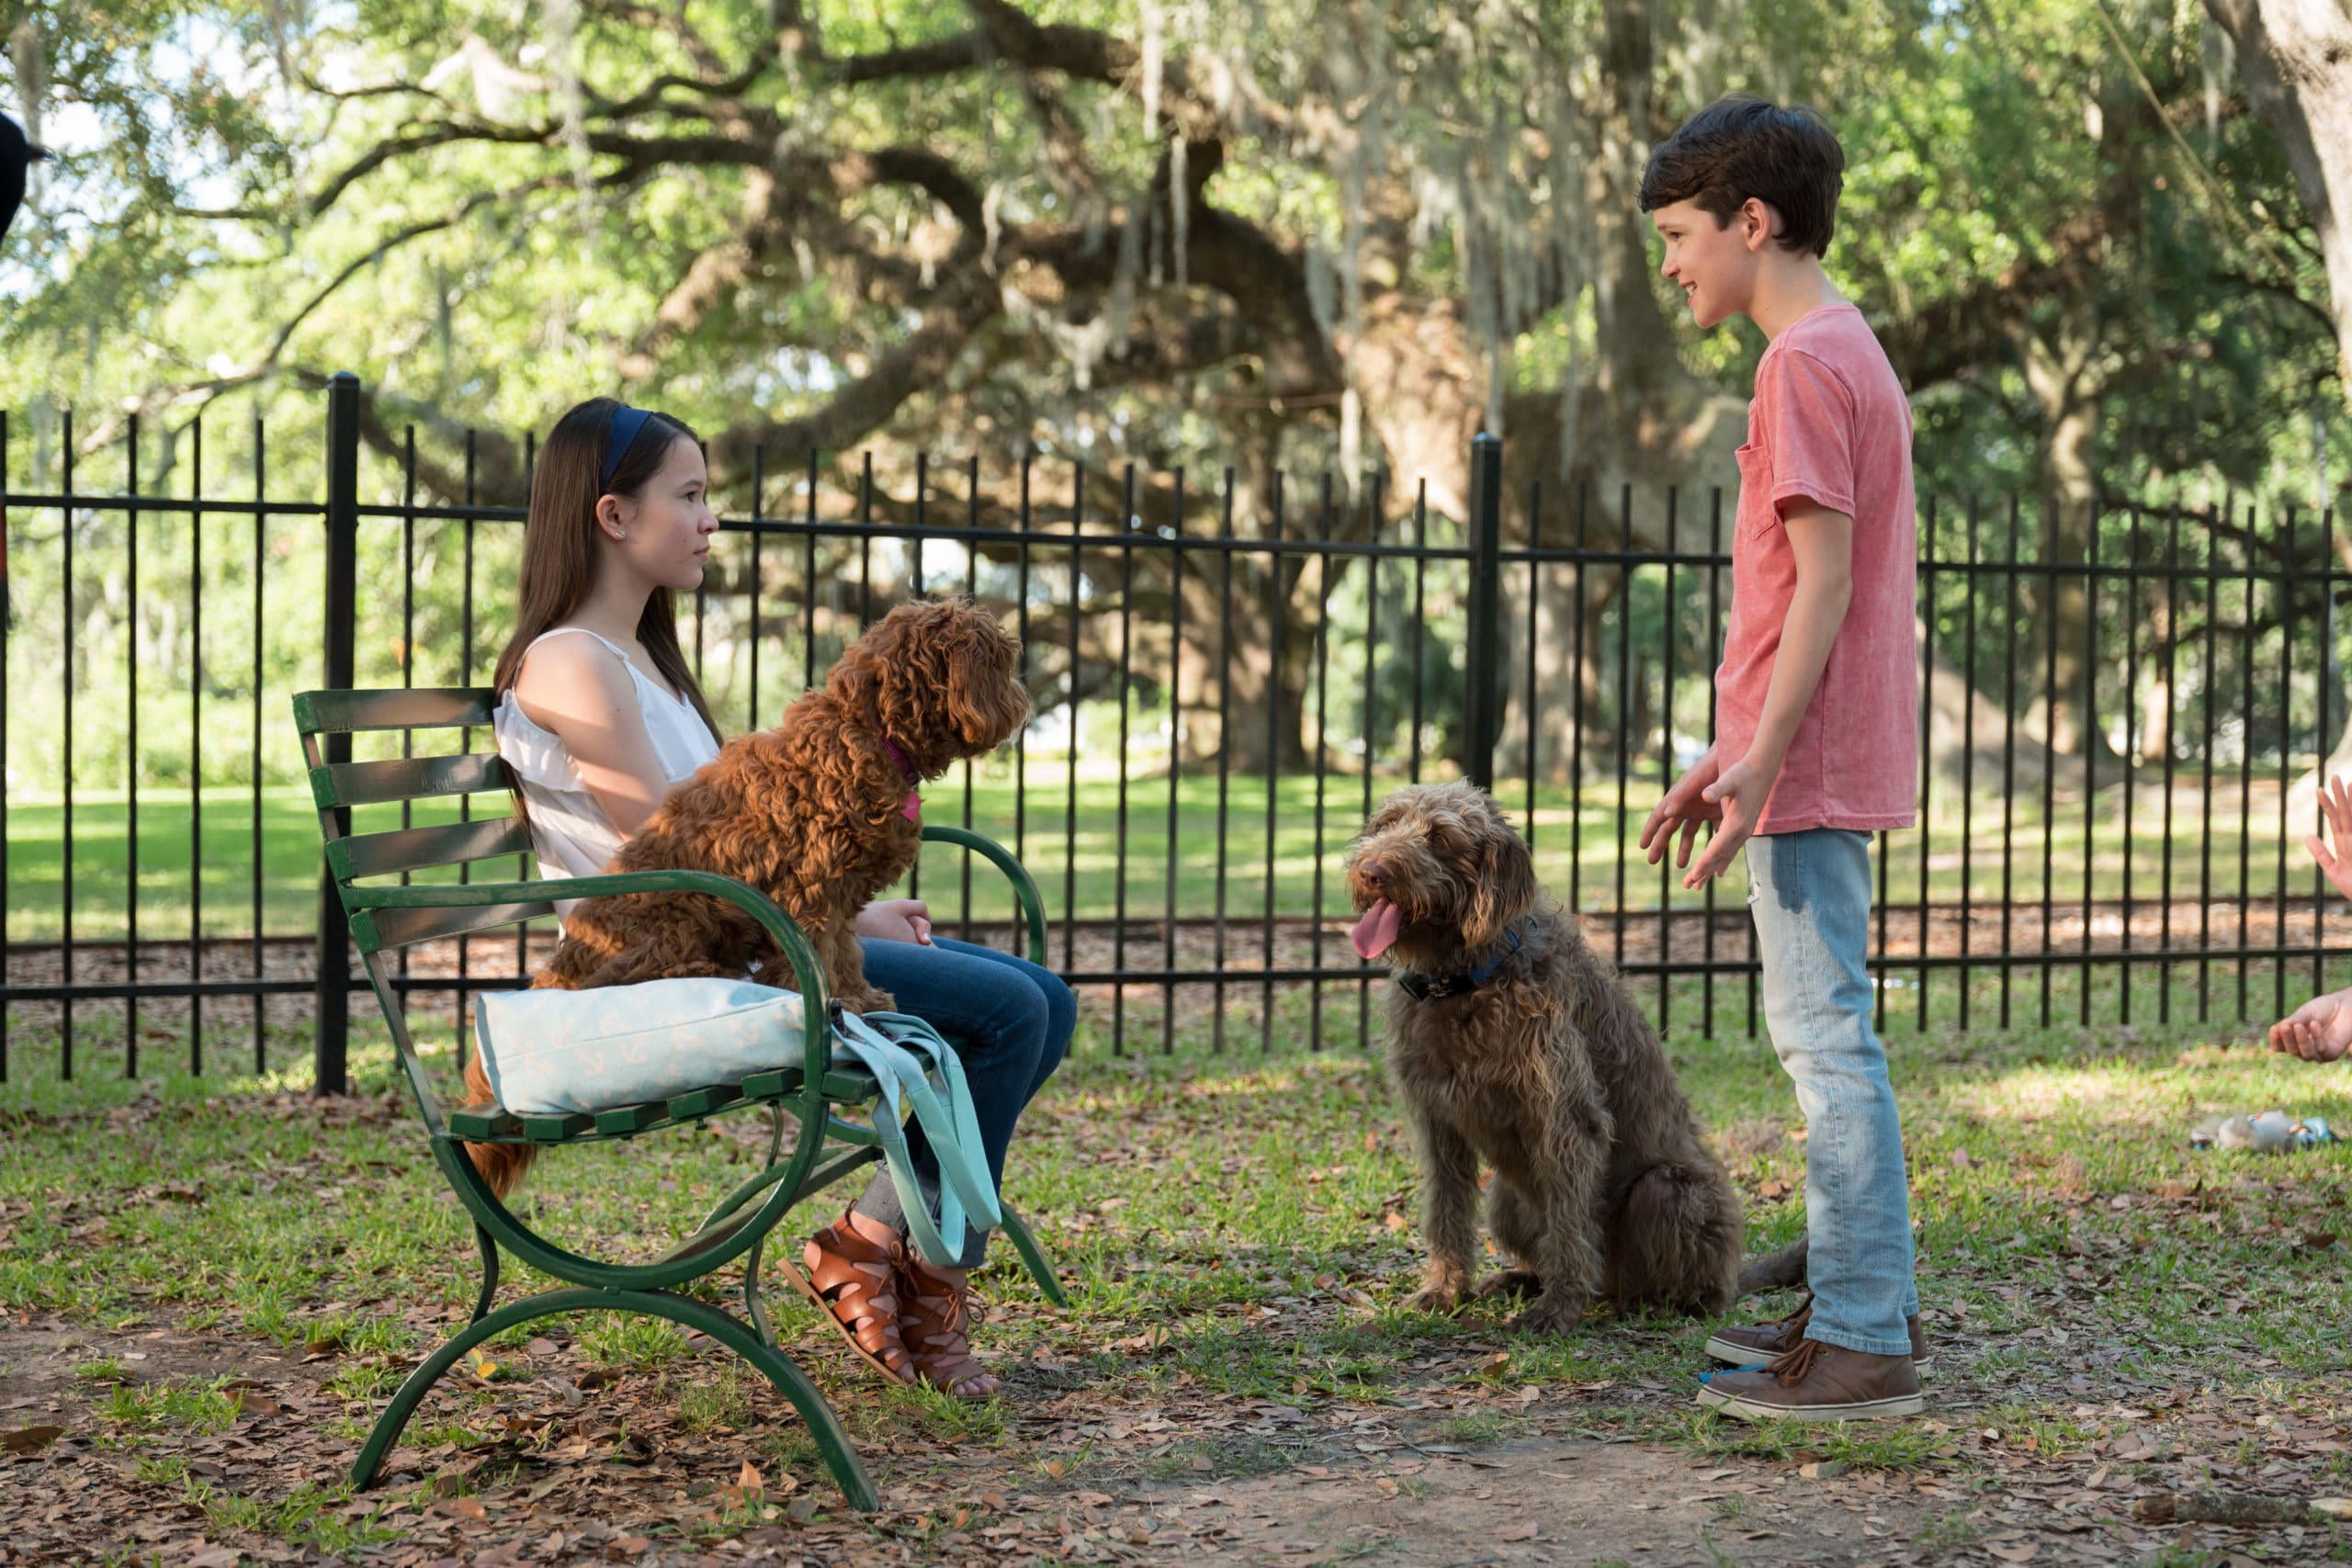 Think Like a Dog Kids. It's time to give canines some love! Don't miss the paws-itively heartwarming family comedyThink Like a Dog, premiering on Digital, and On Demand June 9 from Lionsgate.